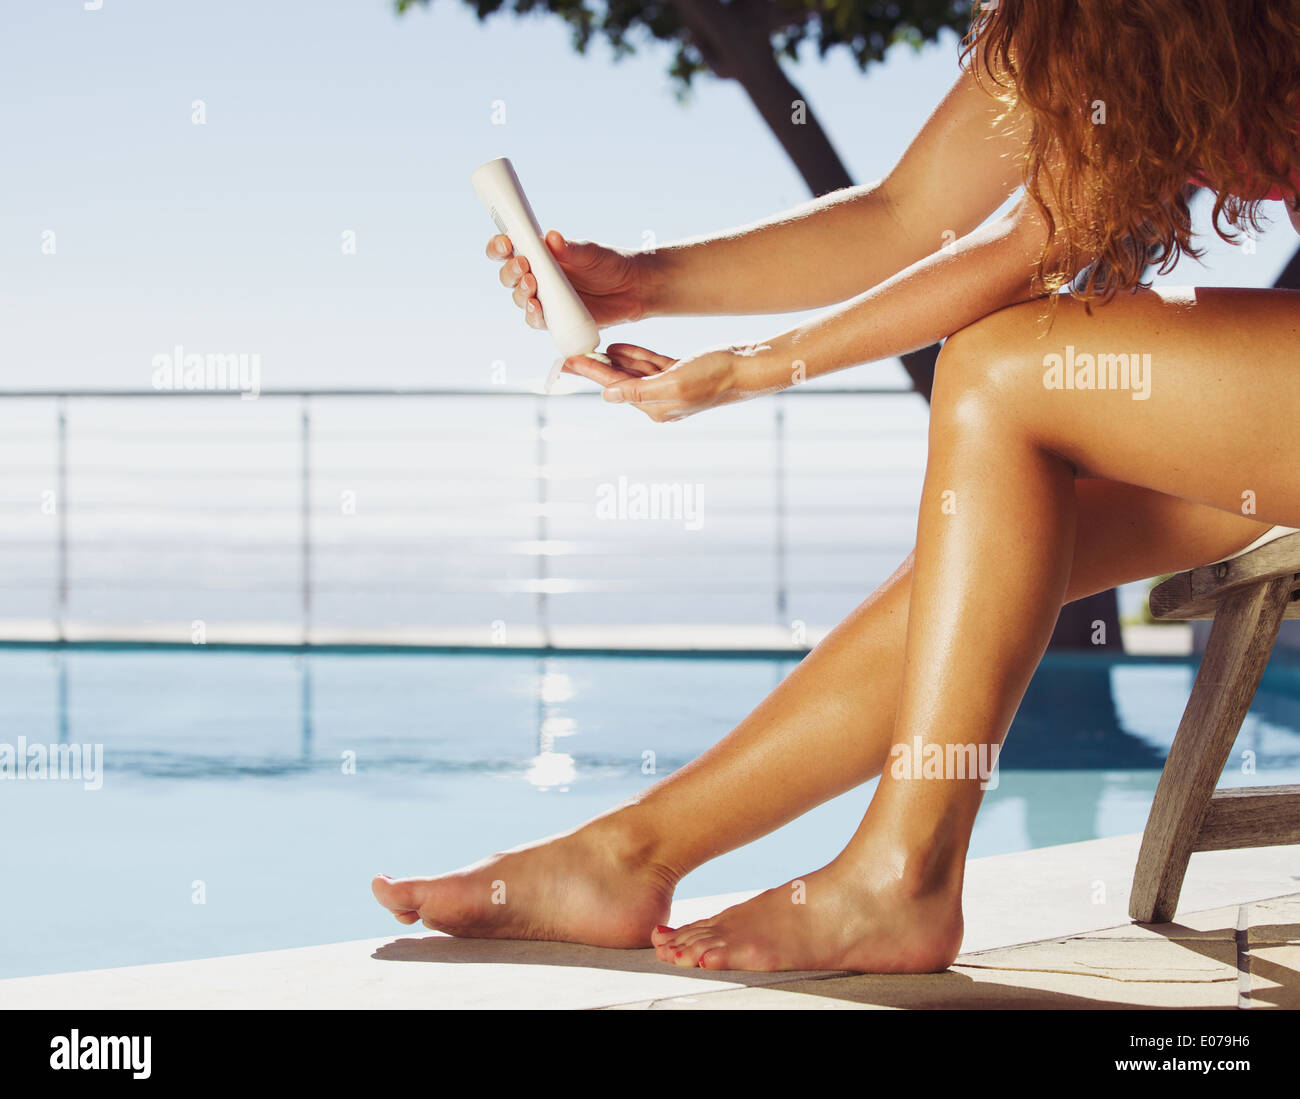 Woman sitting on deck chair by the swimming pool applying sun cream onto her legs. Female model sunbathing at the poolside. - Stock Image